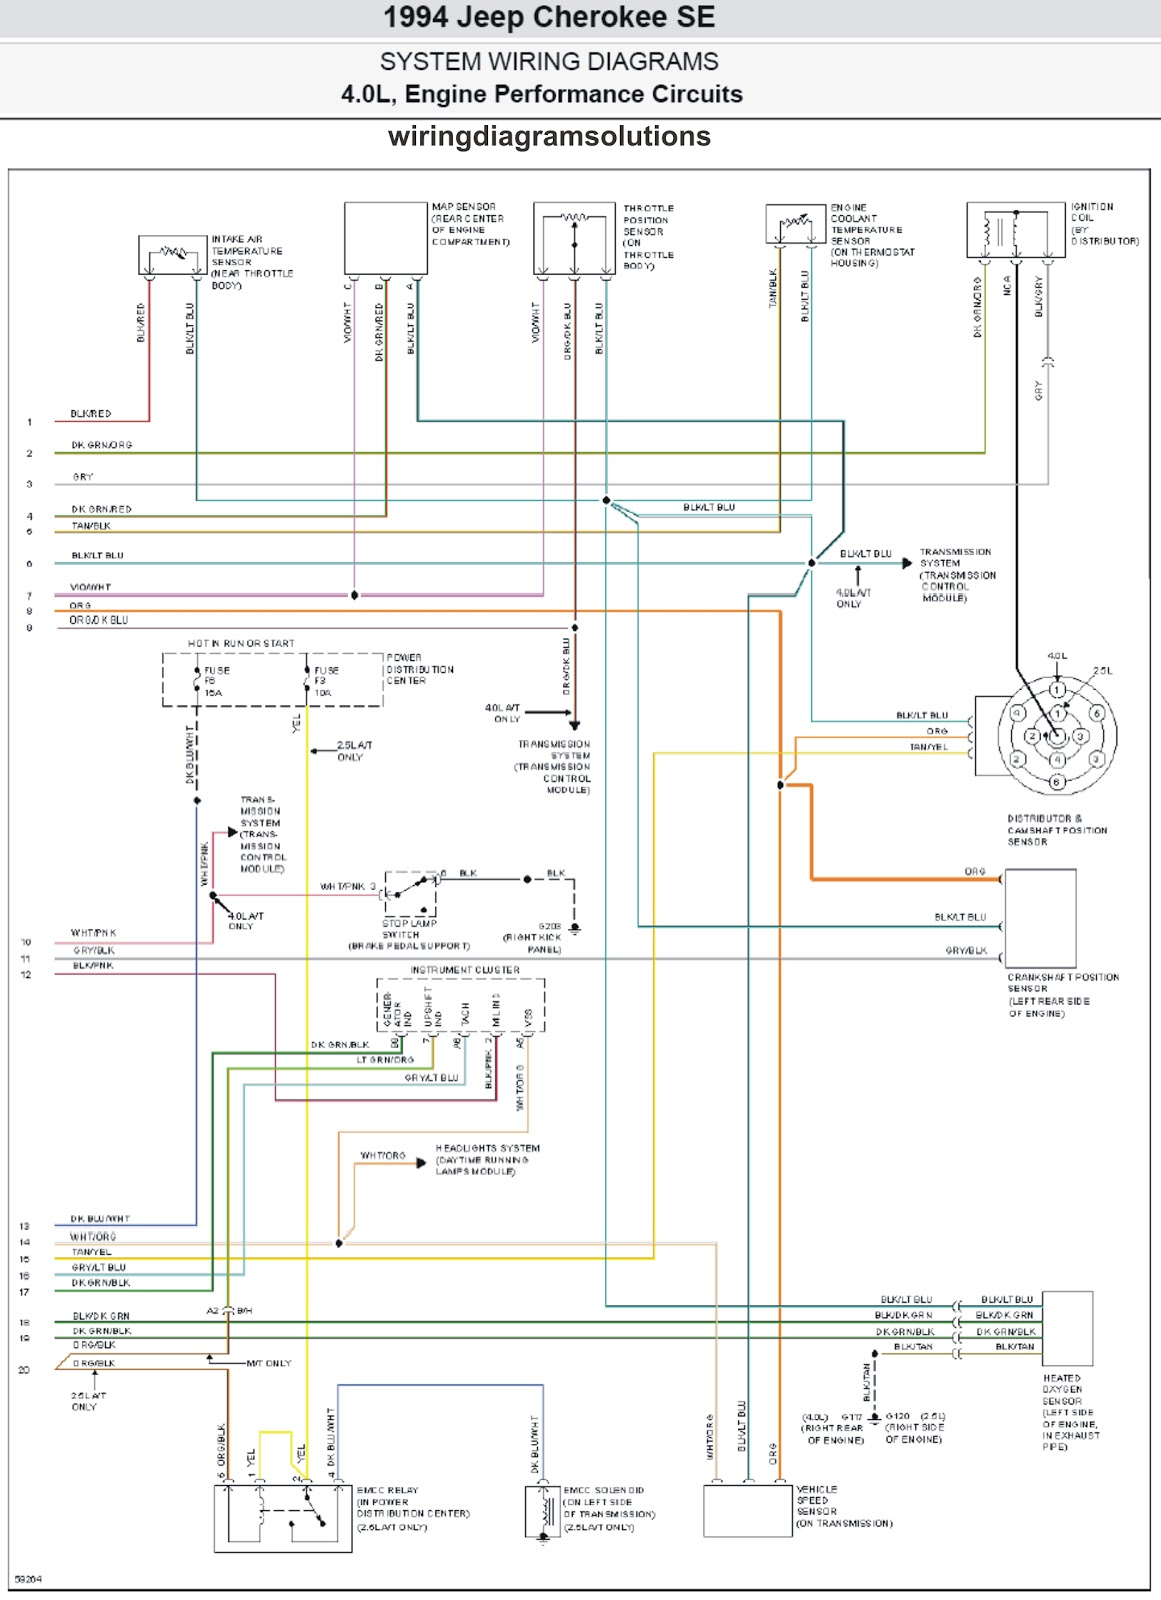 1994 Ford Ranger 2 3 Engine Diagram Wiring Library 2004 Mazda Tribute May 2011 Schematic Diagrams Solutions 2008 Fusion